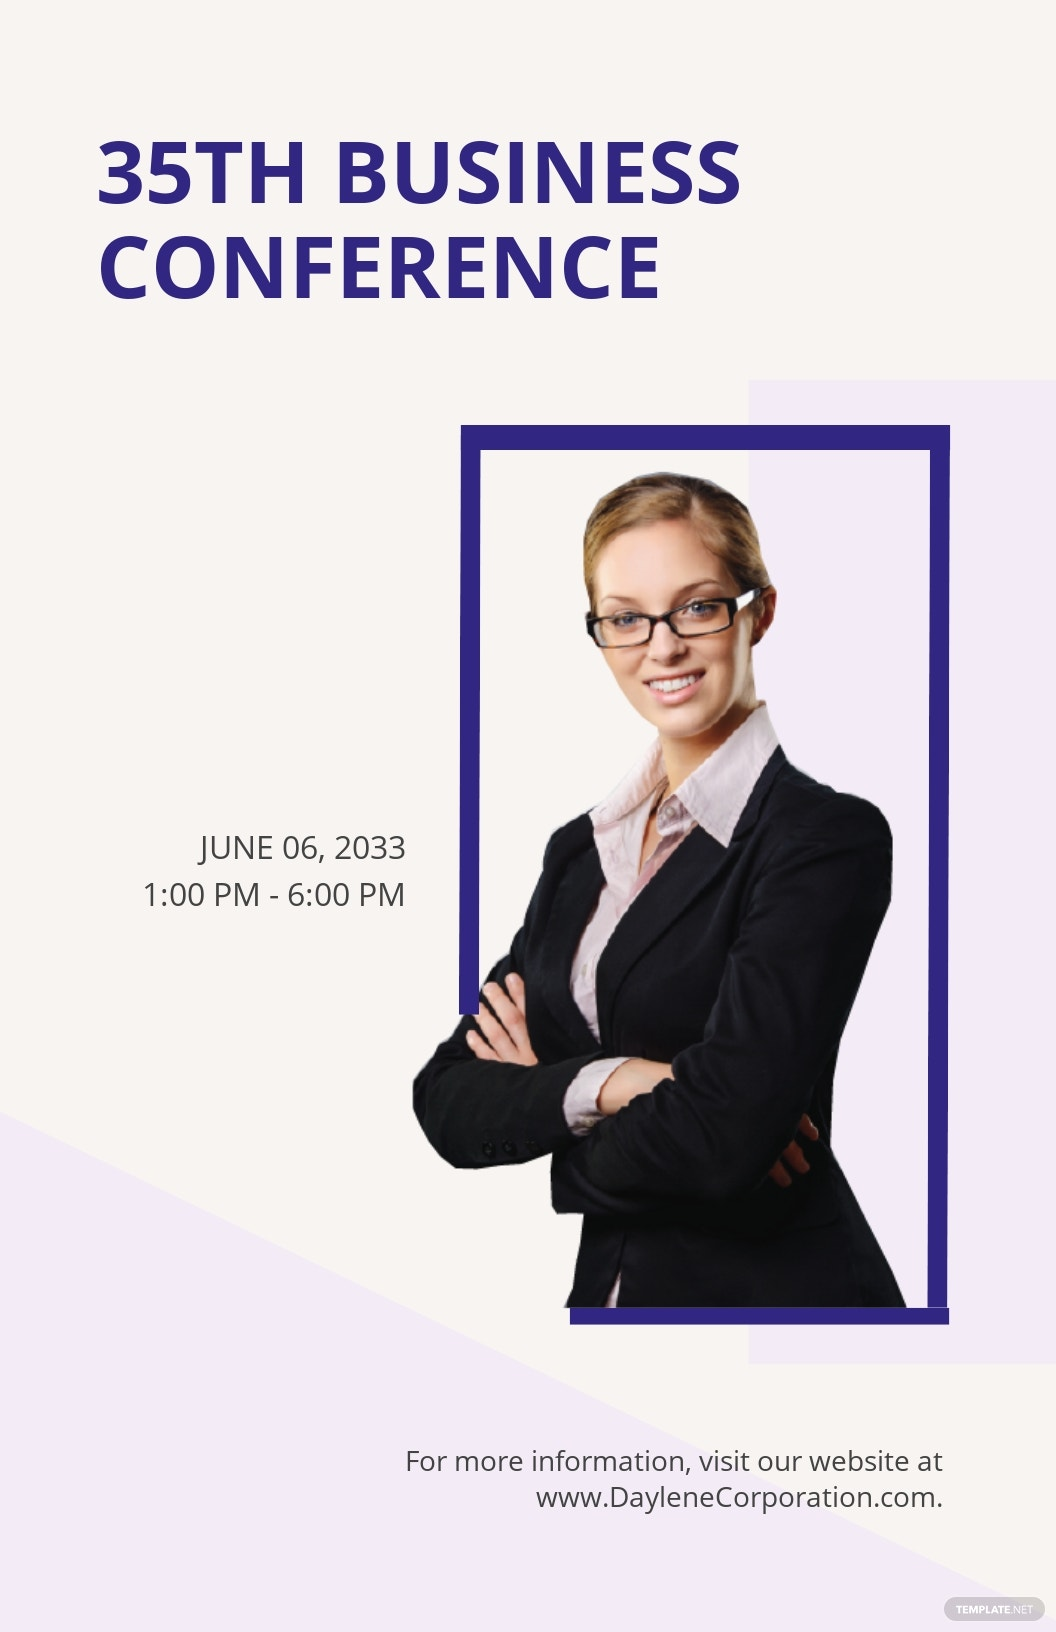 Business Conference Poster Template [Free JPG] - Illustrator, Apple Pages, PSD